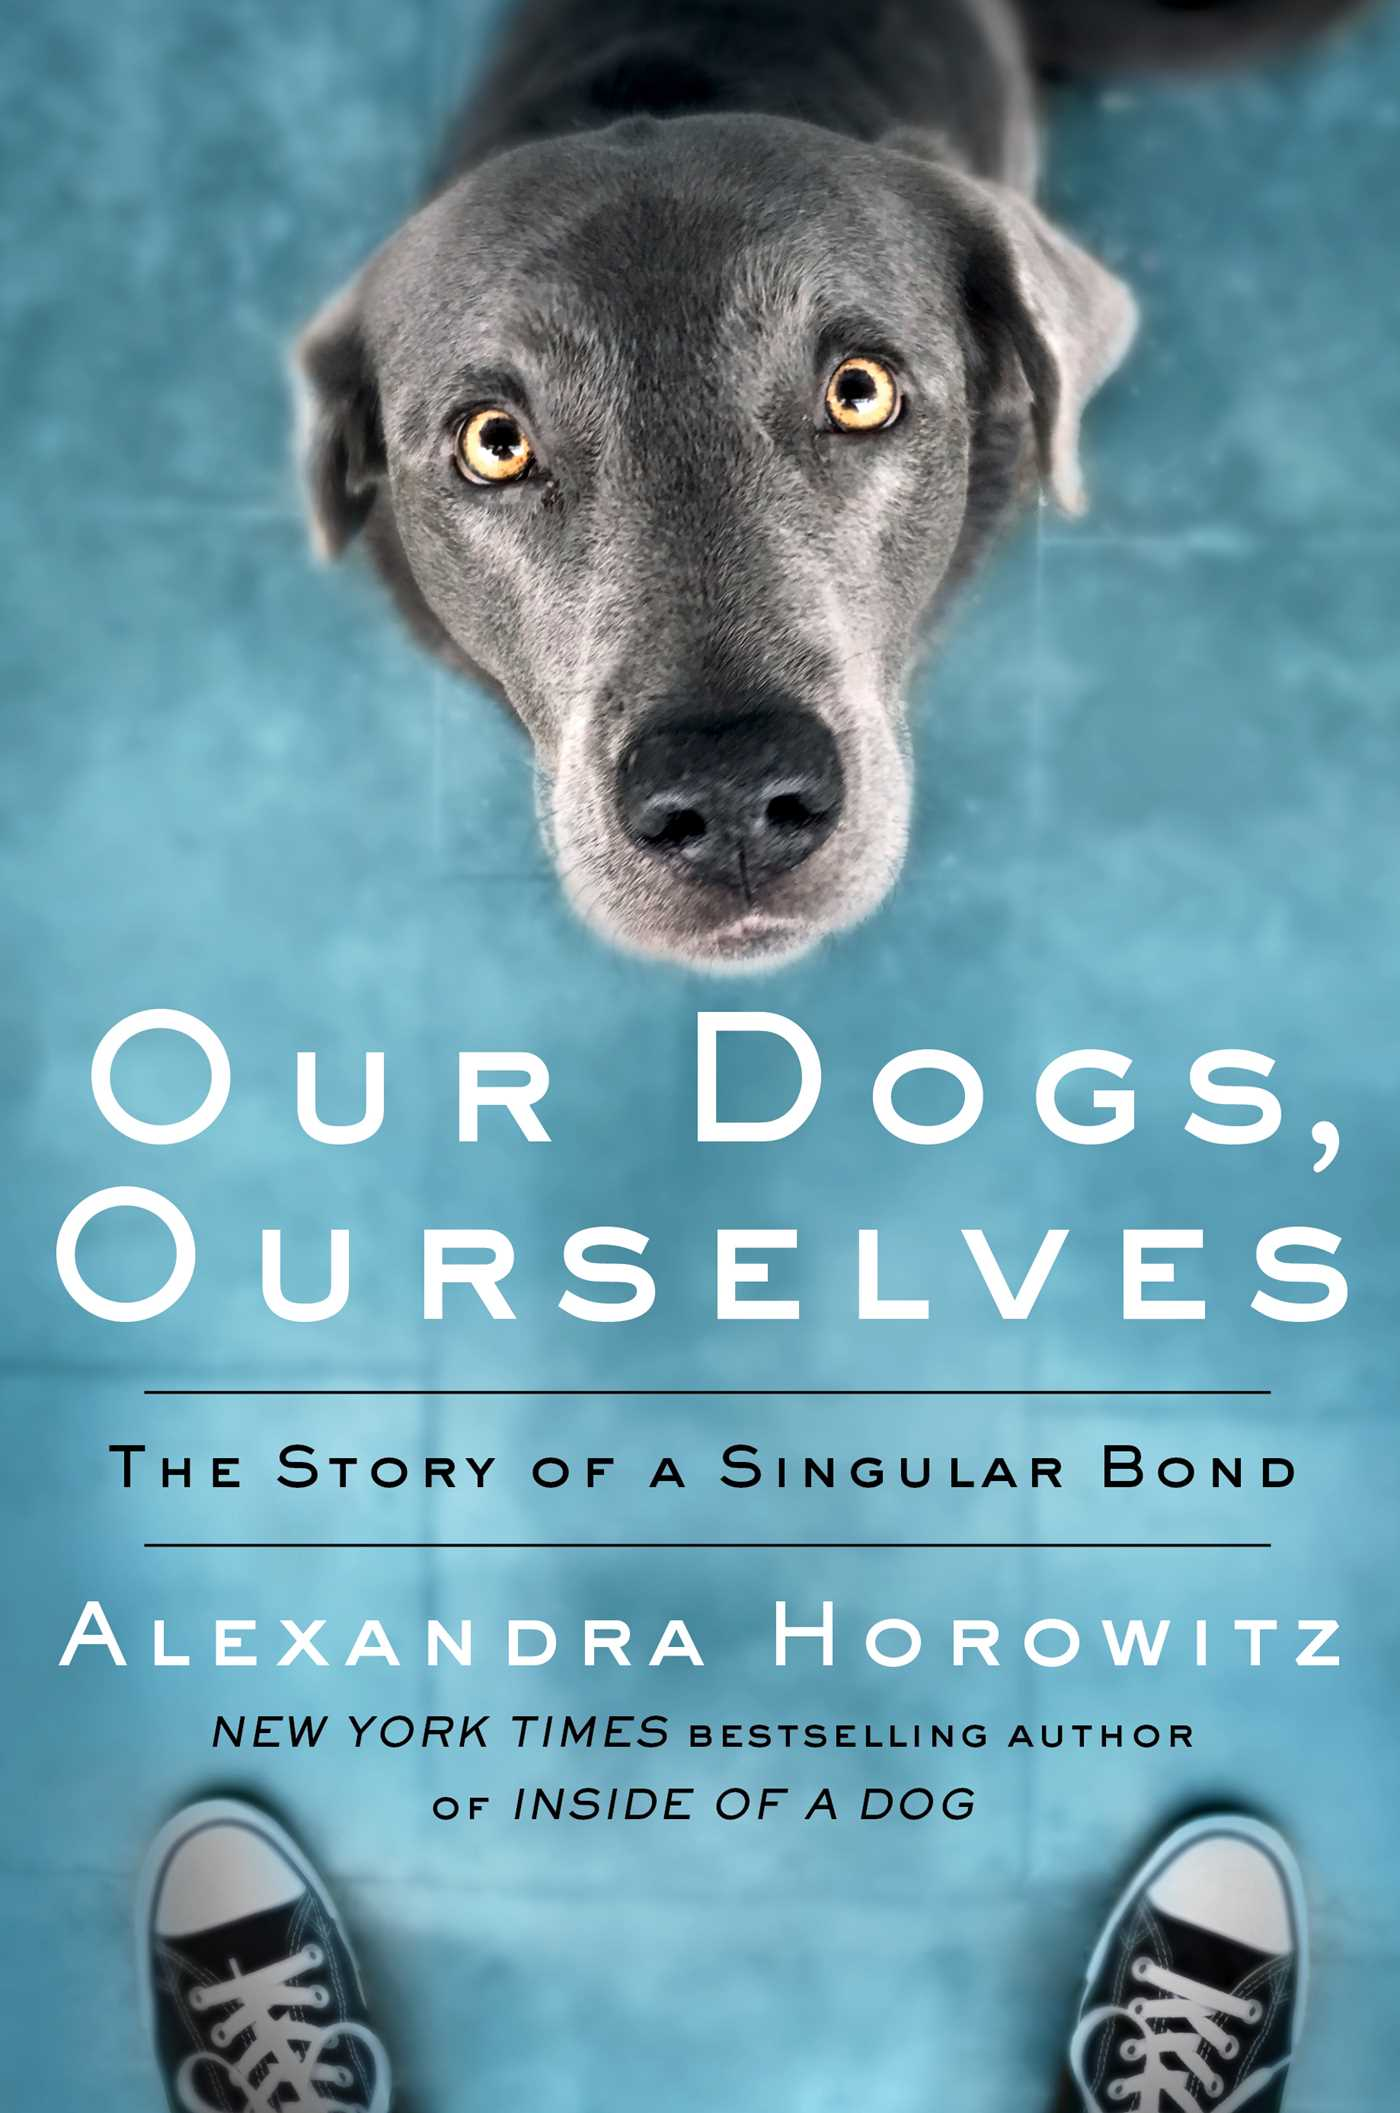 Our Dogs, Ourselves | Book by Alexandra Horowitz | Official